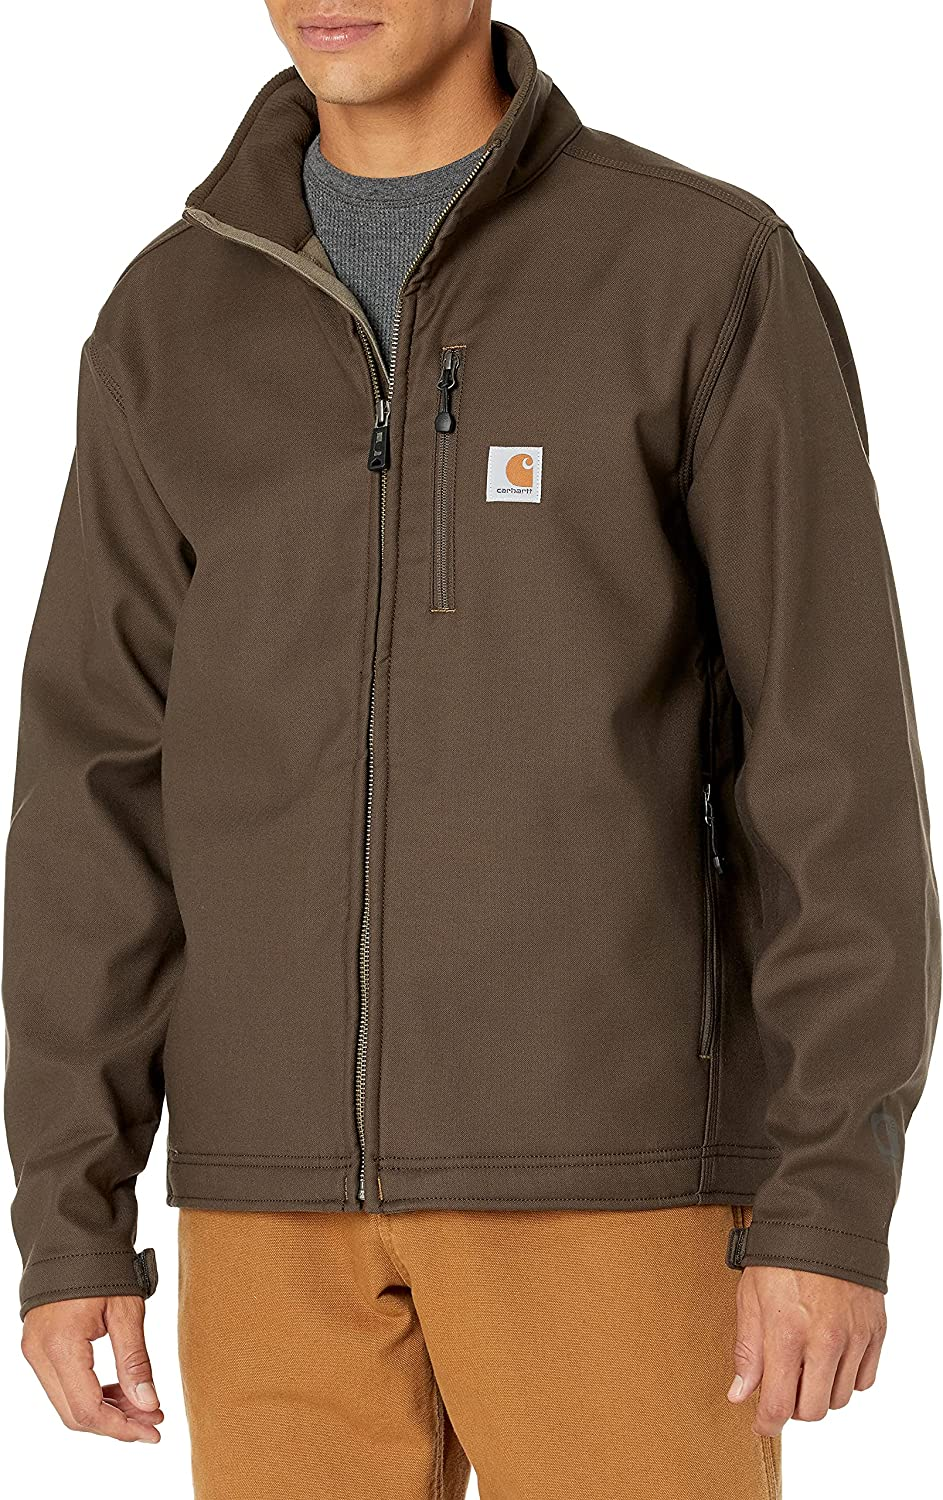 Carhartt Men's Pineville OFFicial shop Safety and trust Jacket